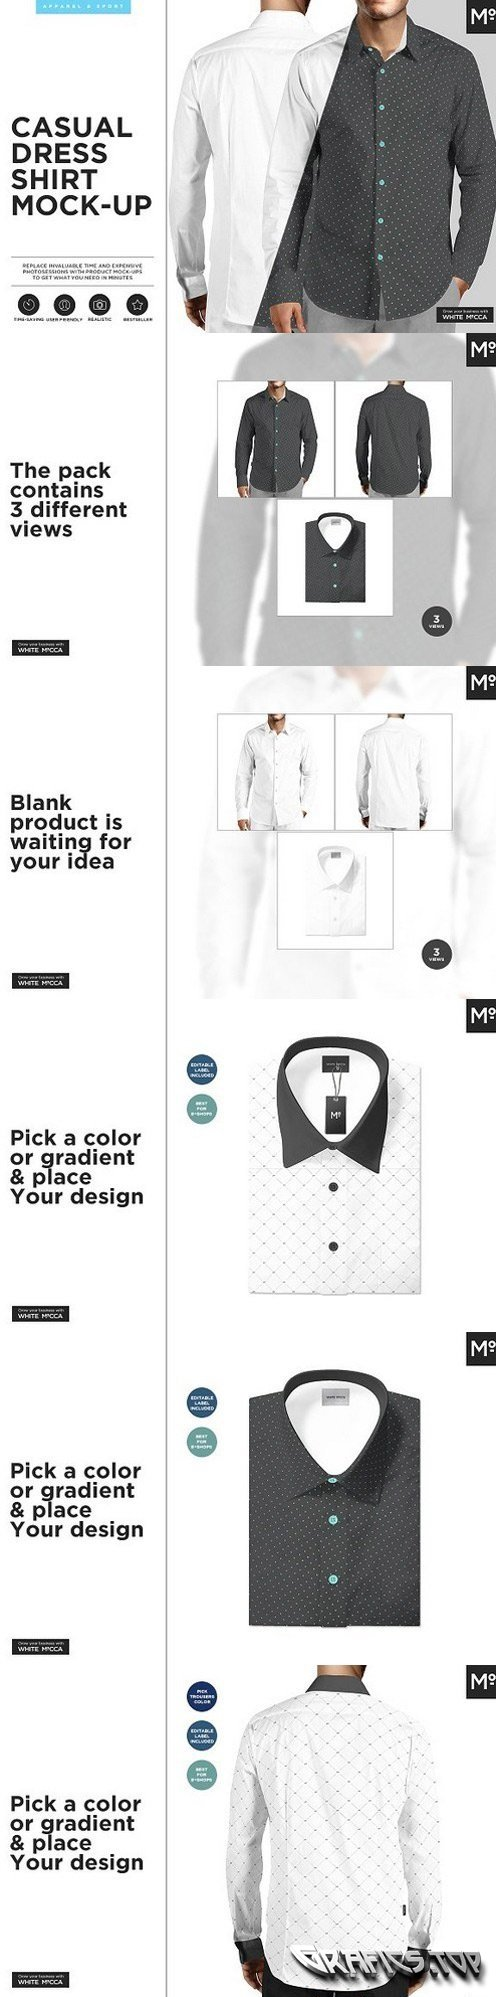 Casual Dress Shirt Mock-up 1470862